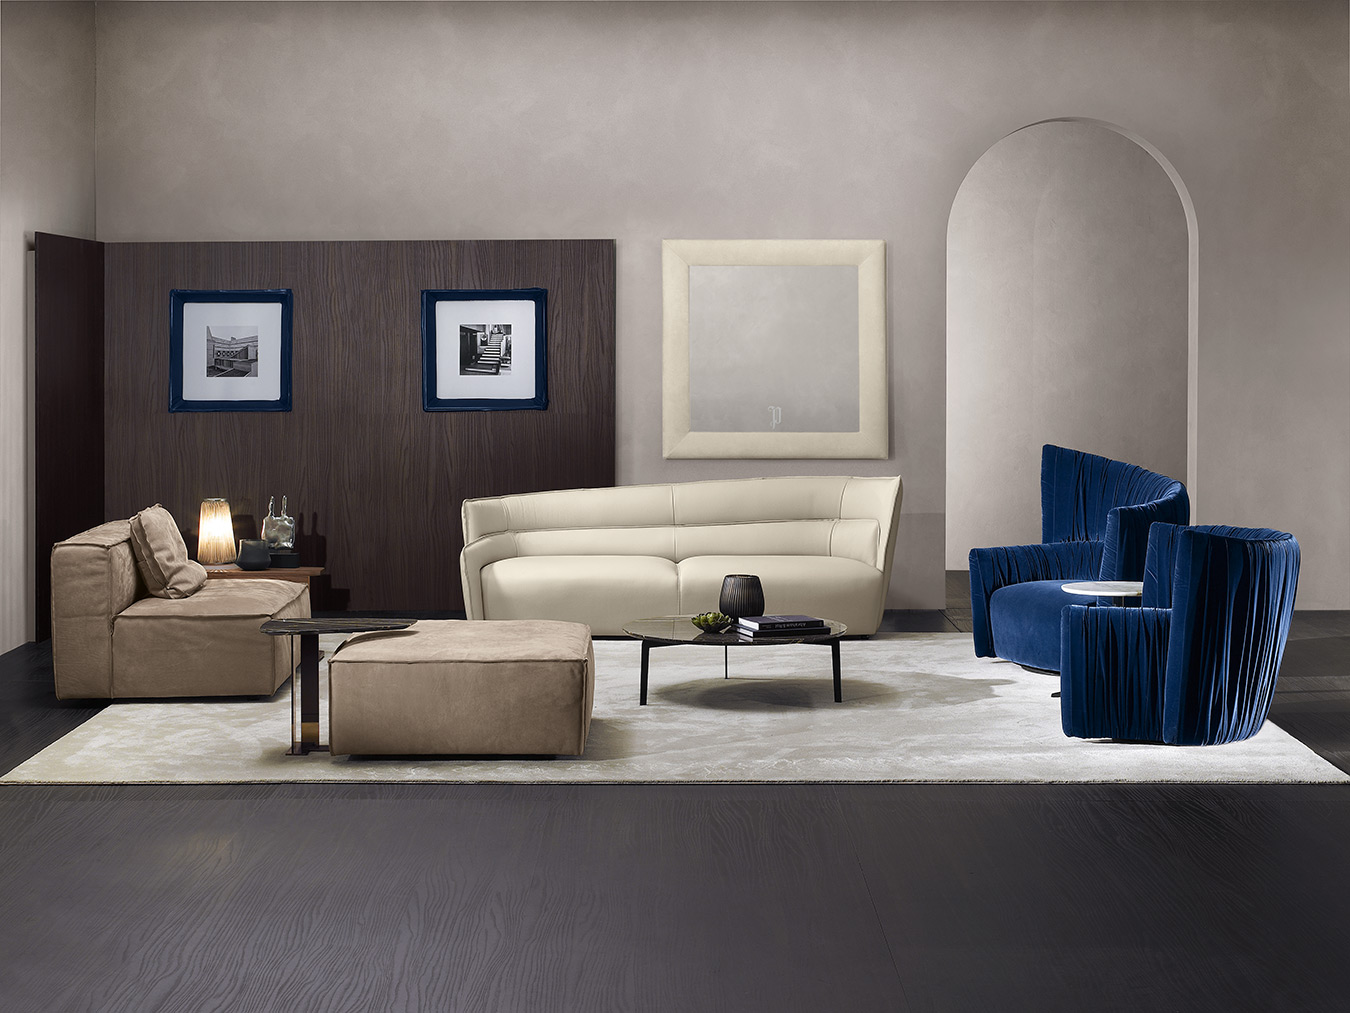 leather 3-seater sofa for living room, white leather sofa, blue velvet armchairs with horizontal lines, brown leather sofa with its own puff, mple veloudes polithrones, aspros dermatinos kanapes, kafe dermatinos kanames xoris podia, kanapes xoris podia, s